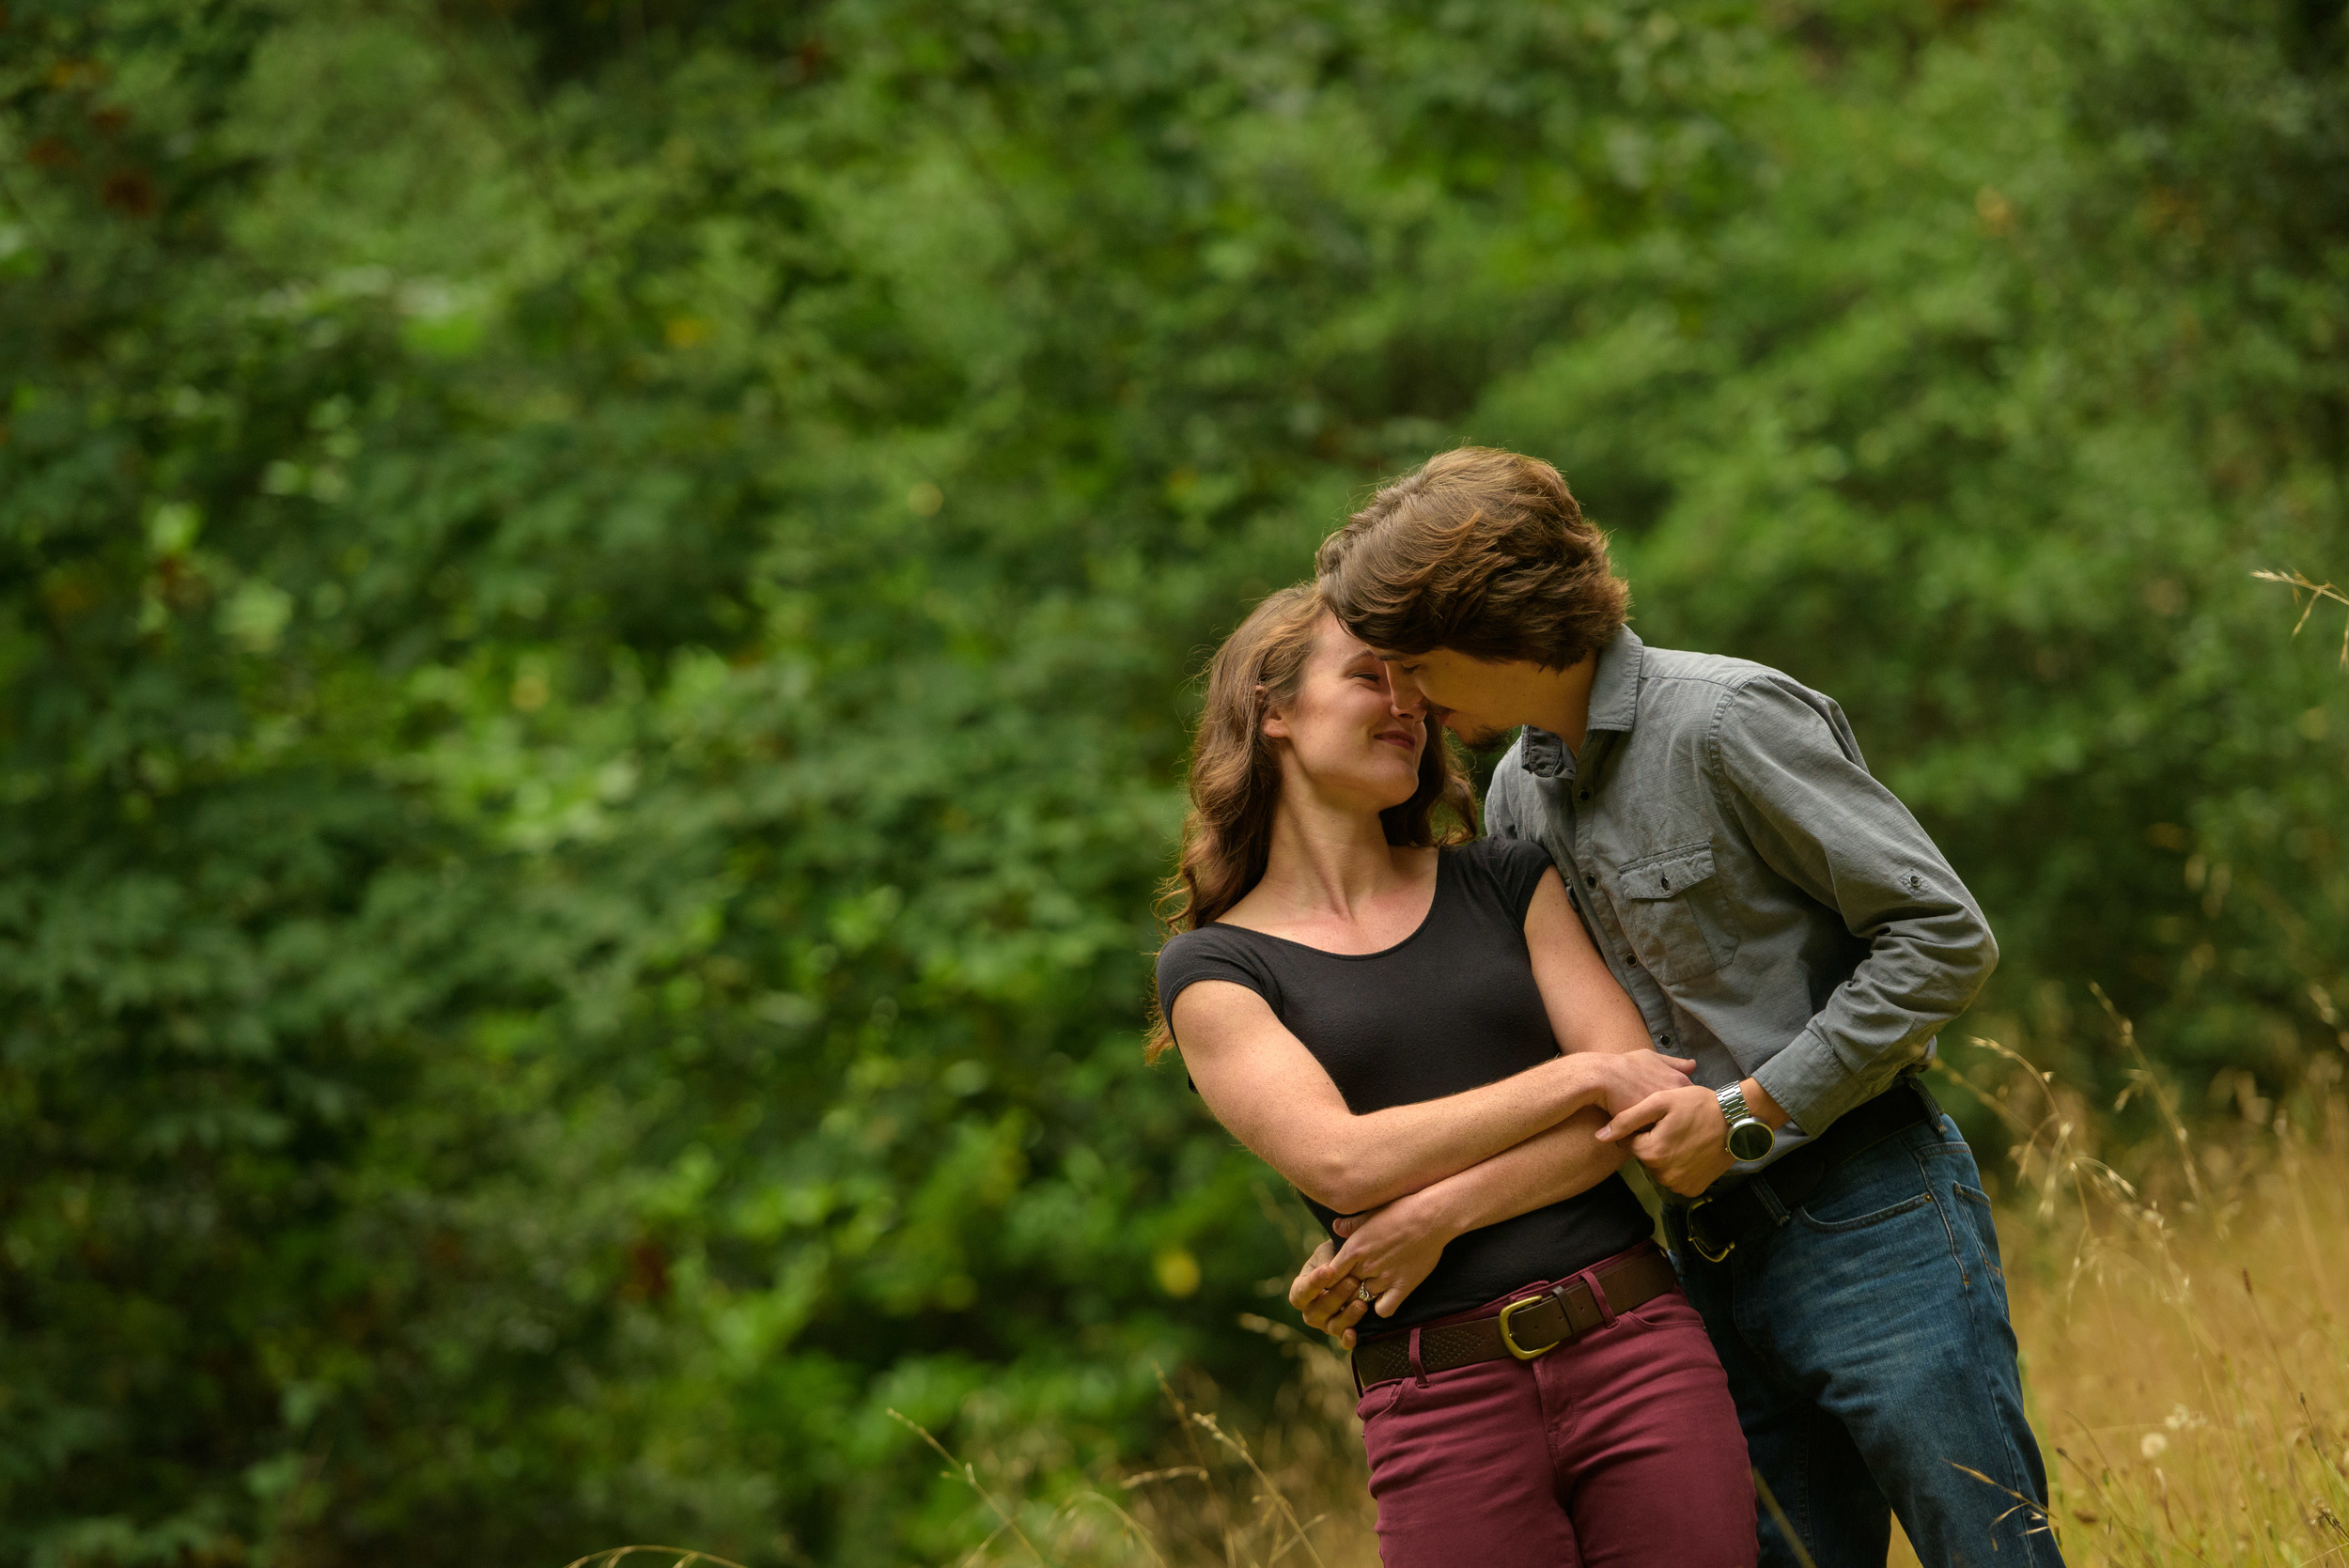 Couple kissing in the forest - Engagement Photos in Nisene Marks Forest in Aptos, CA - by Bay Area wedding photographer Chris Schmauch